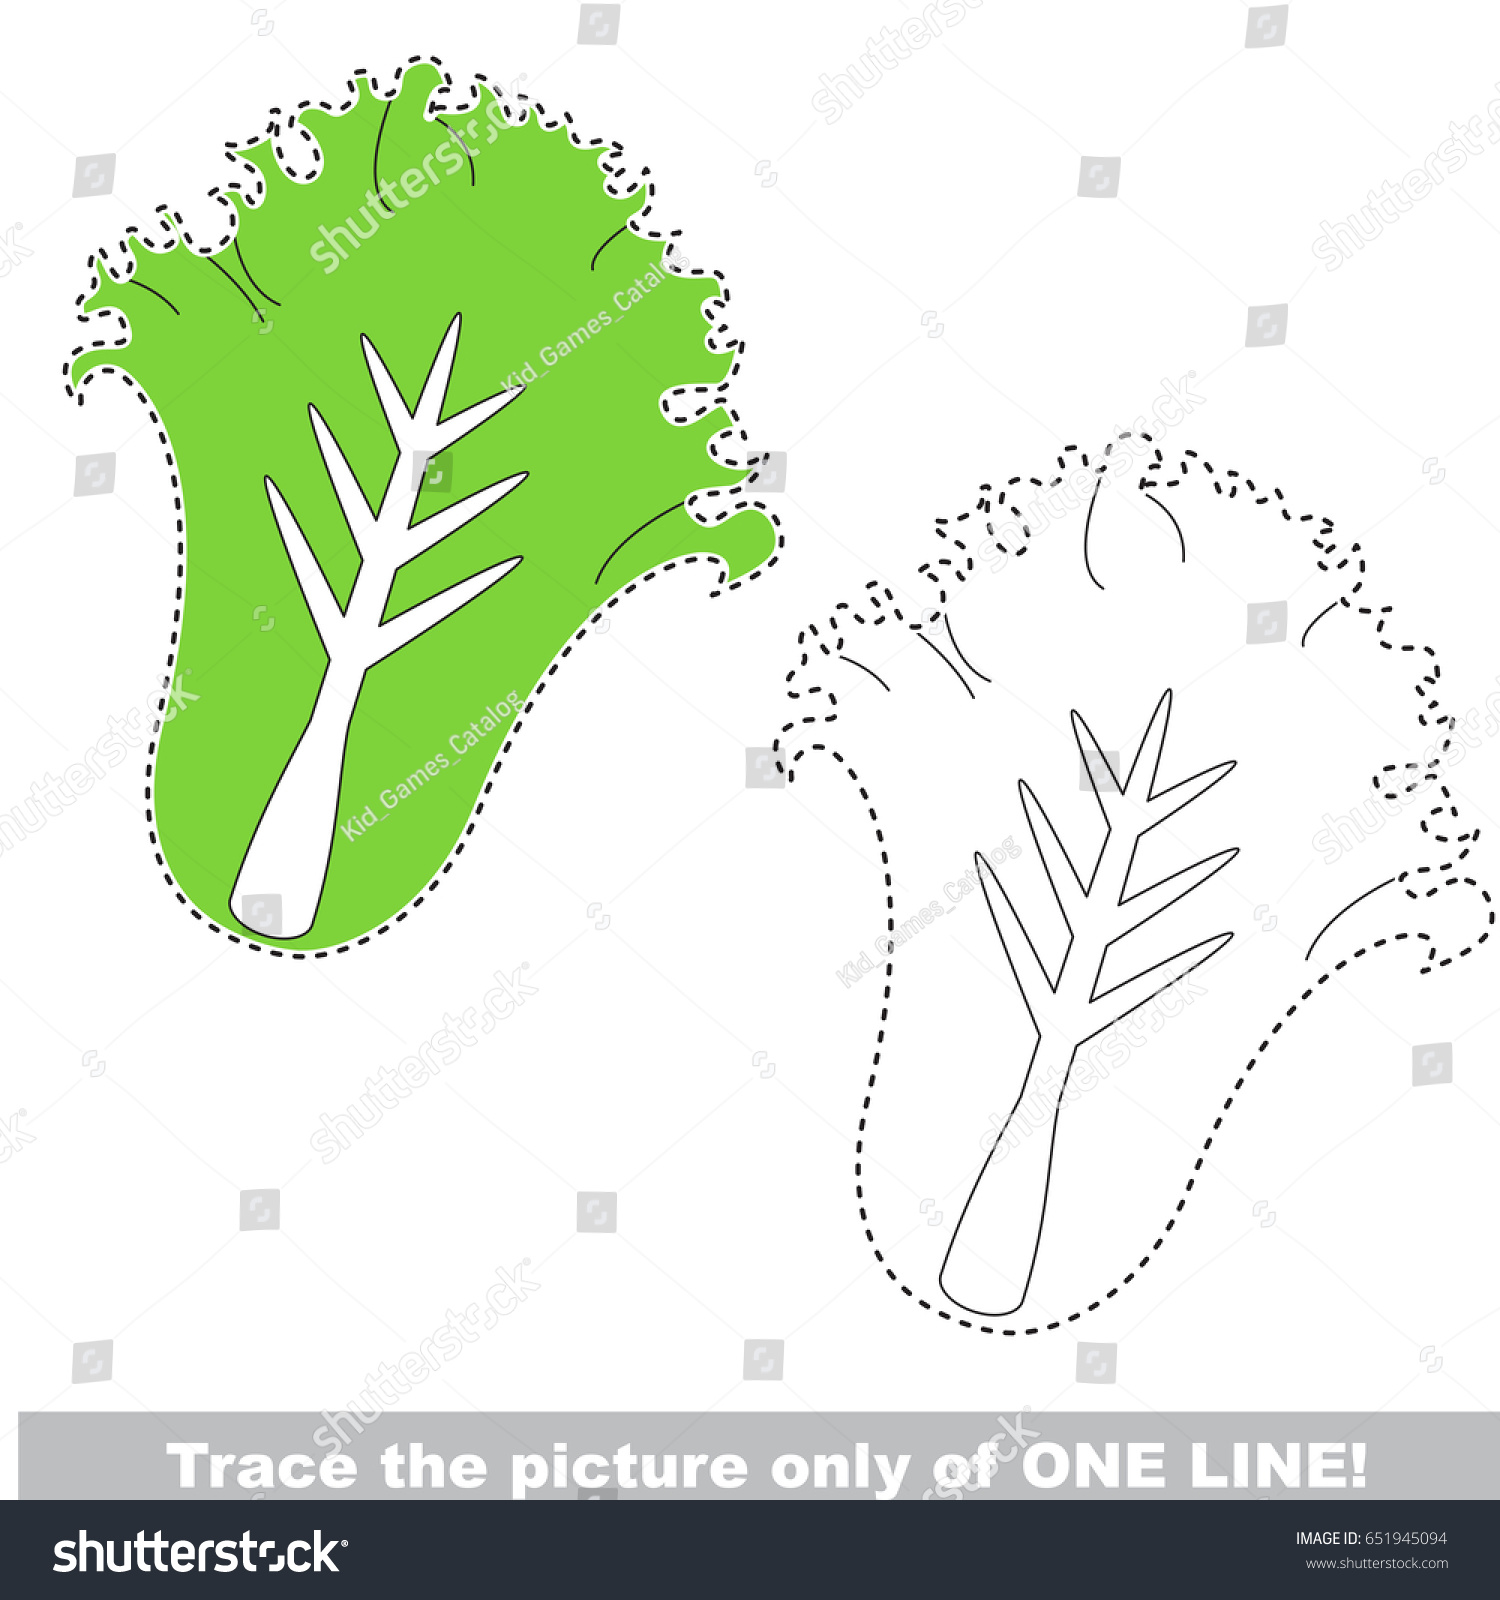 Lettuce Be Traced Only One Line Stock Vector 651945094 - Shutterstock